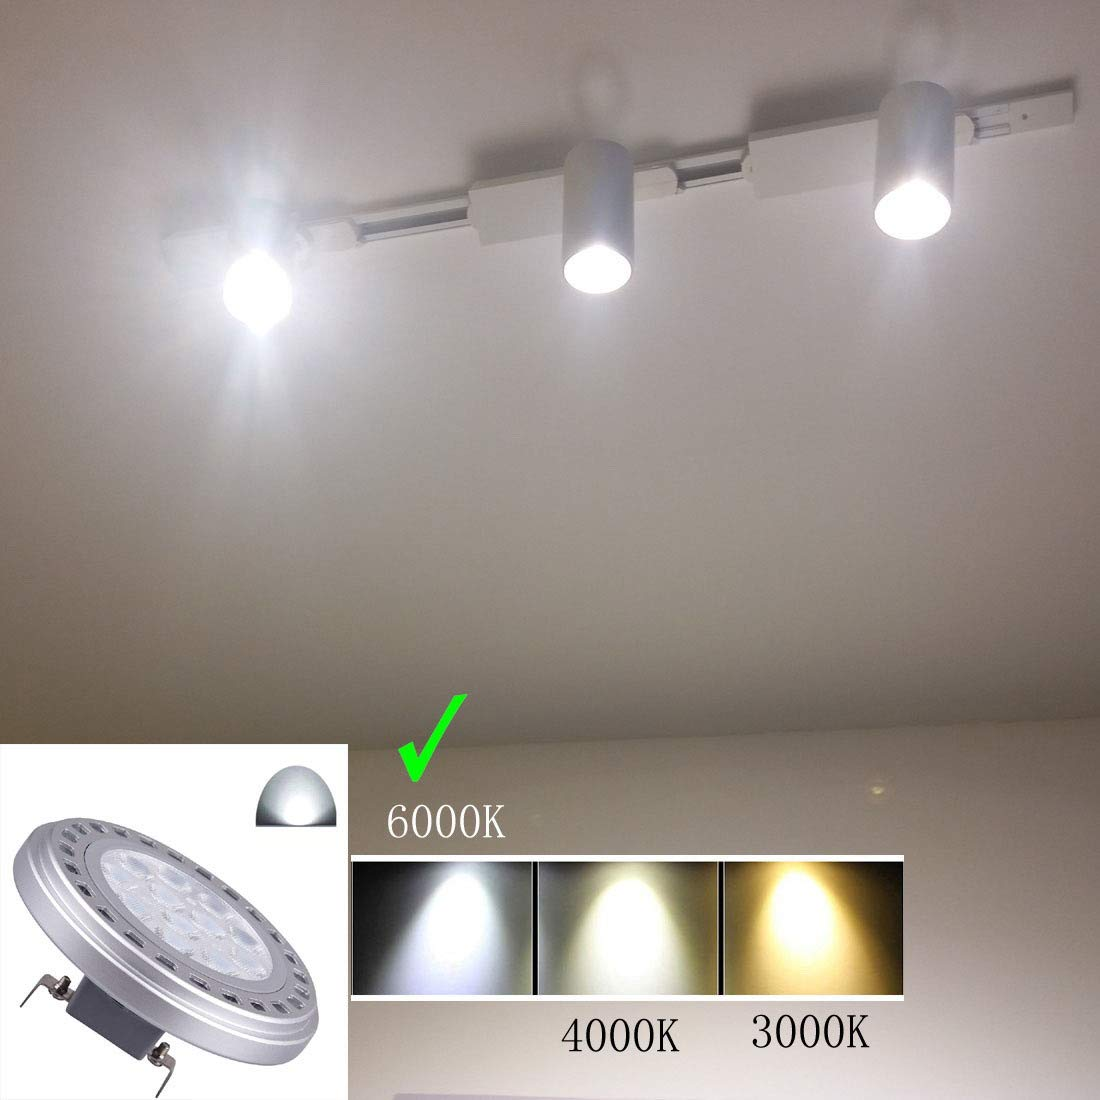 Ar111 Led G53 Bulb 15w Ac Dc12v 6000k Cool White Light Es111 Ar111 Spotlight Tracklight Landscape Reflector Light 30/°Beam View Angle 1200lm Halogen 75w 100w Replacement Bulbs AR111 G53, 12V